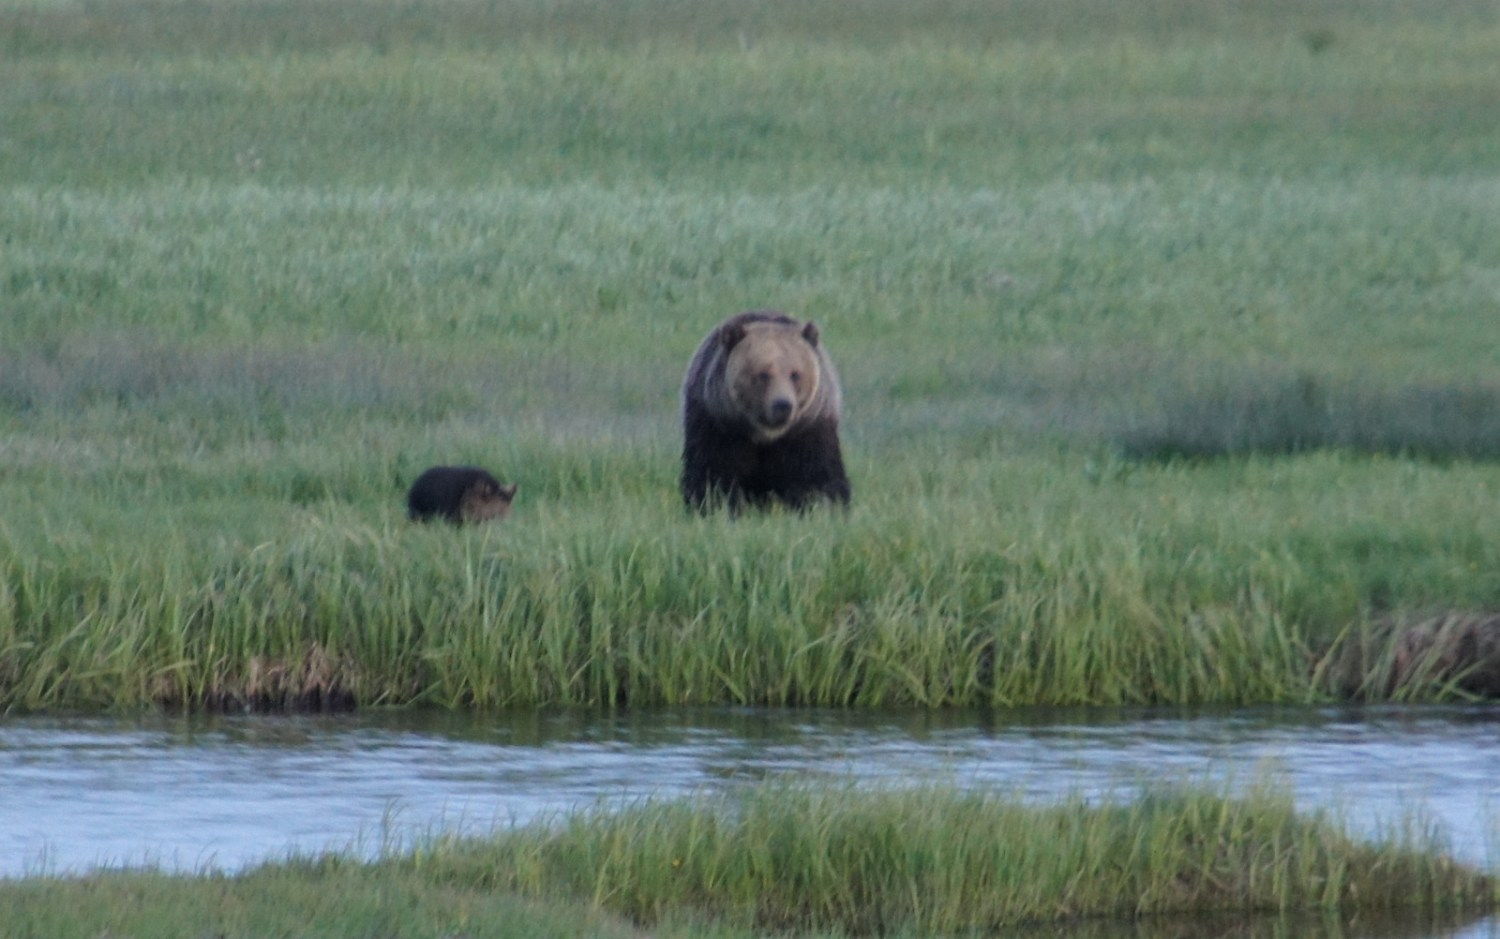 A dusk shot (not so good, sorry) of a mama grizzly and her tiny little cub. I didn't want to get any closer than this for the shot!